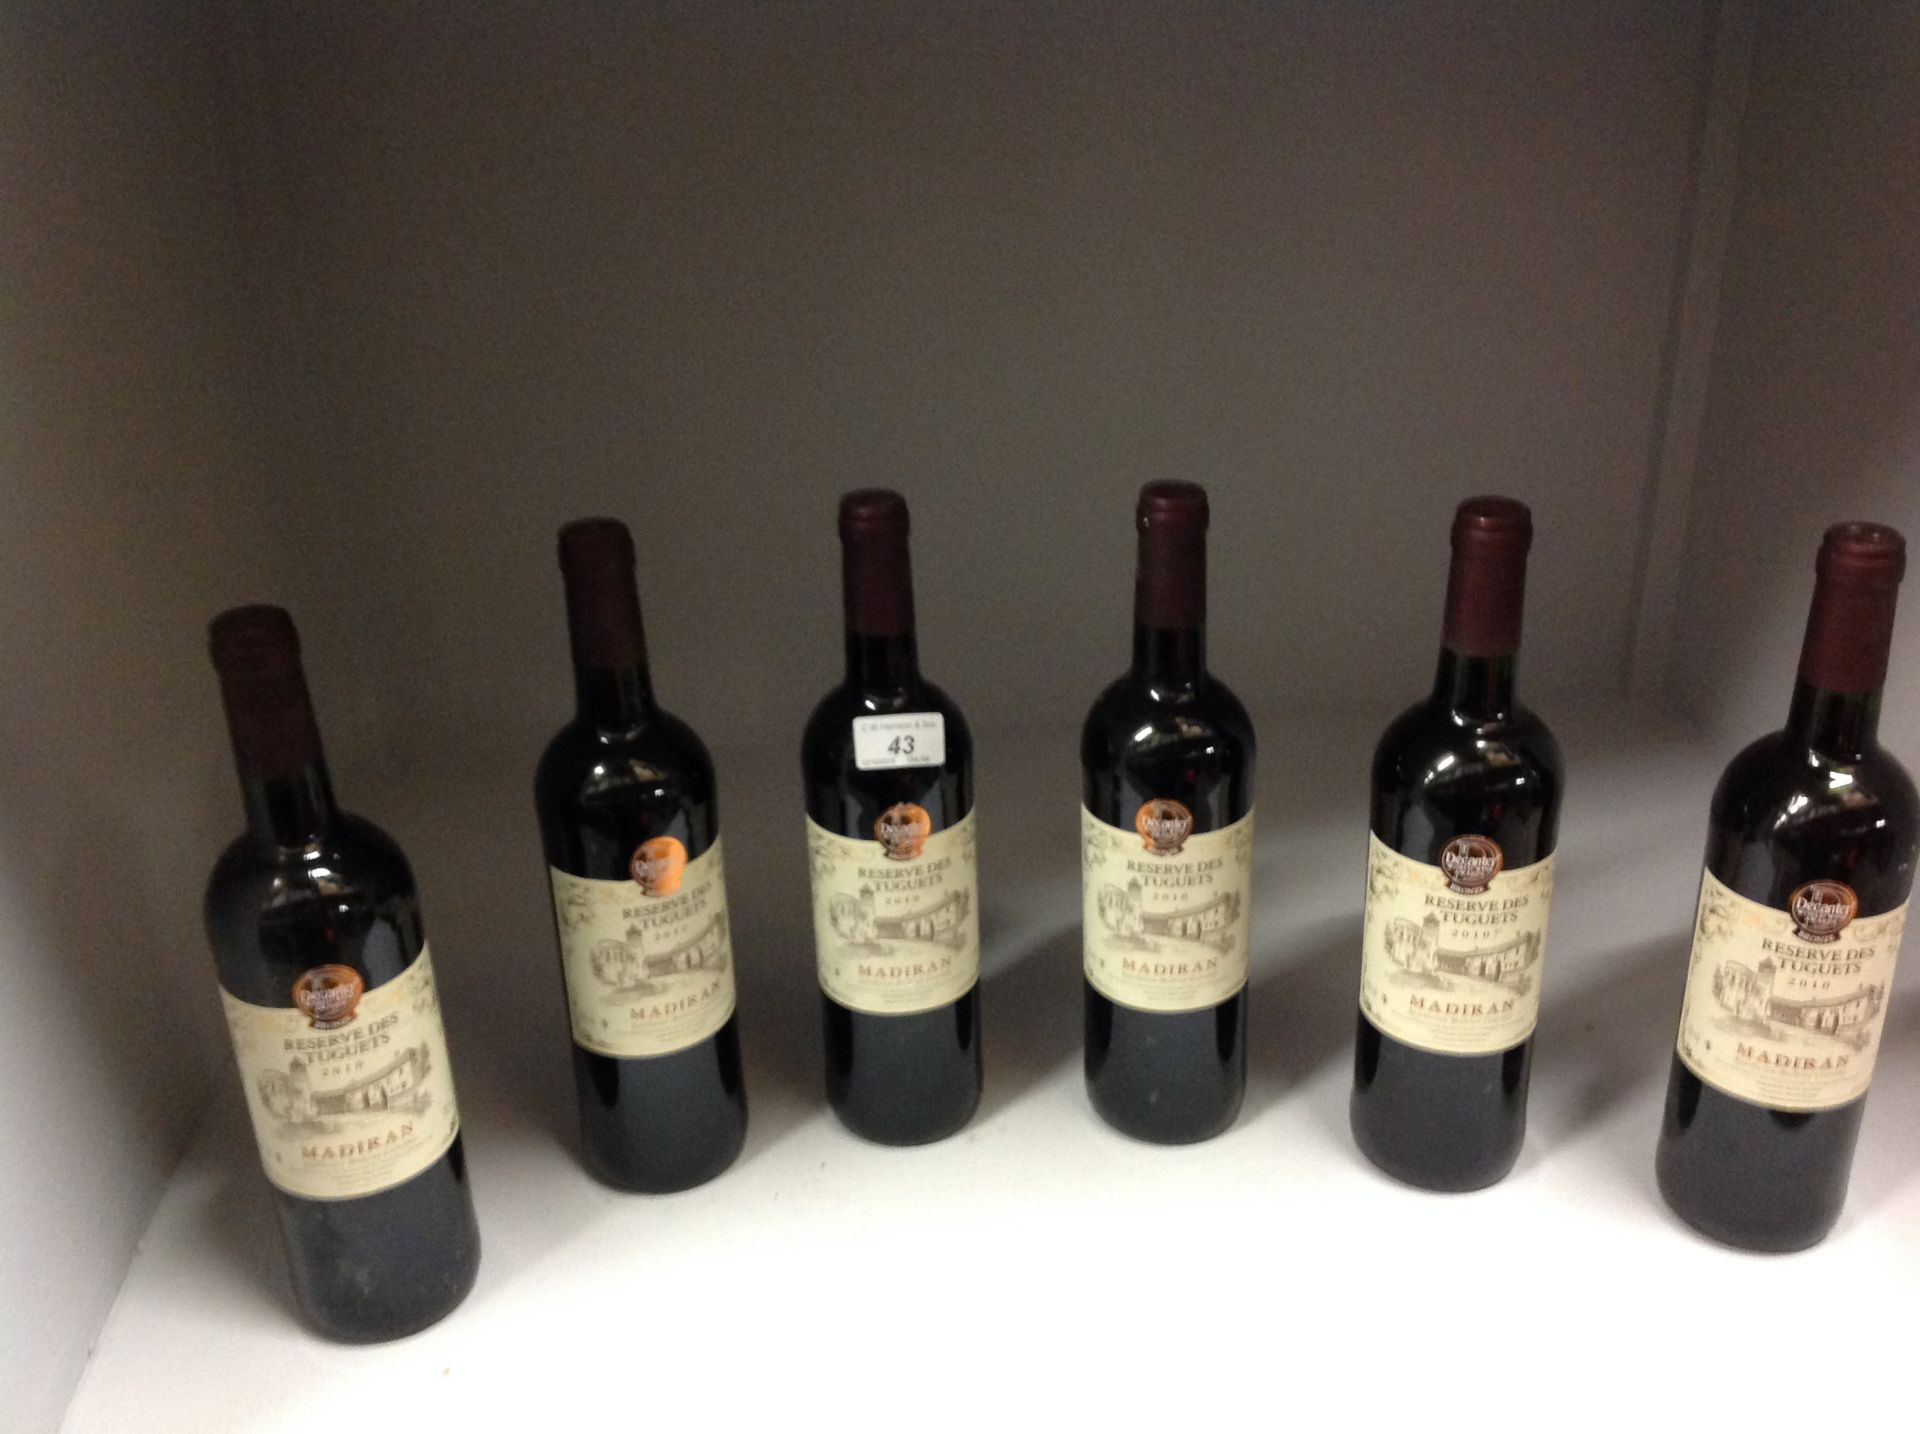 Lot 43 - 6 x 750ml bottles Reserve Des Tuguets 20